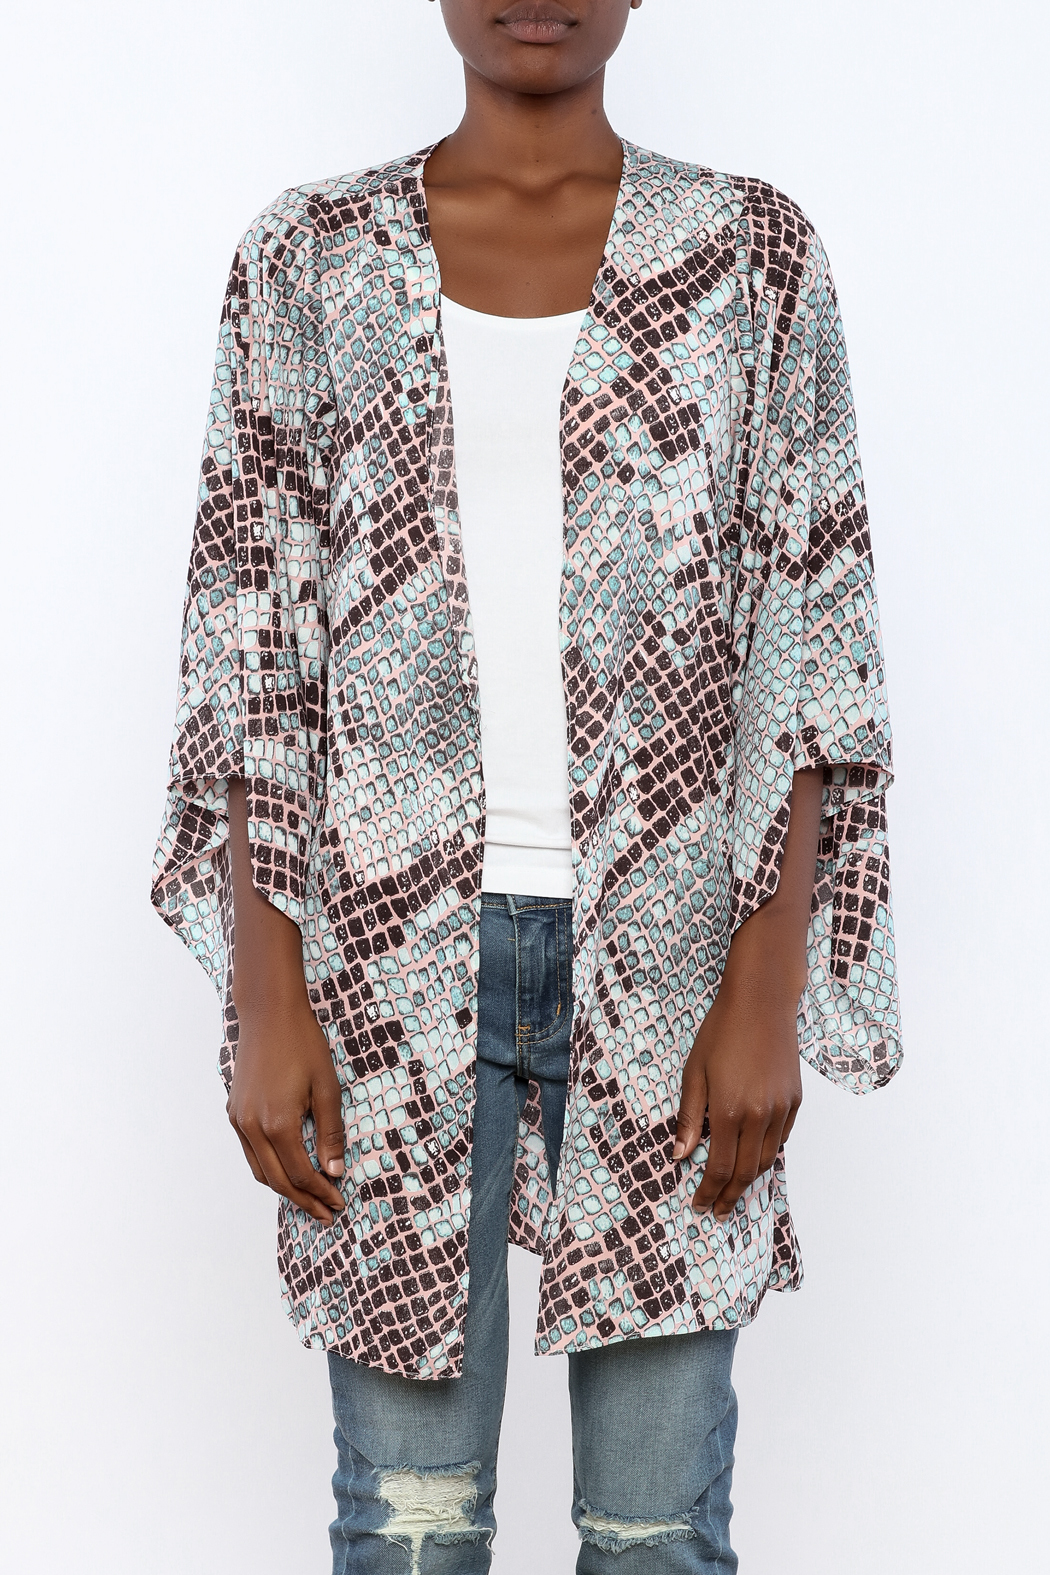 Buddy Love Snake Printed Kimono - Side Cropped Image